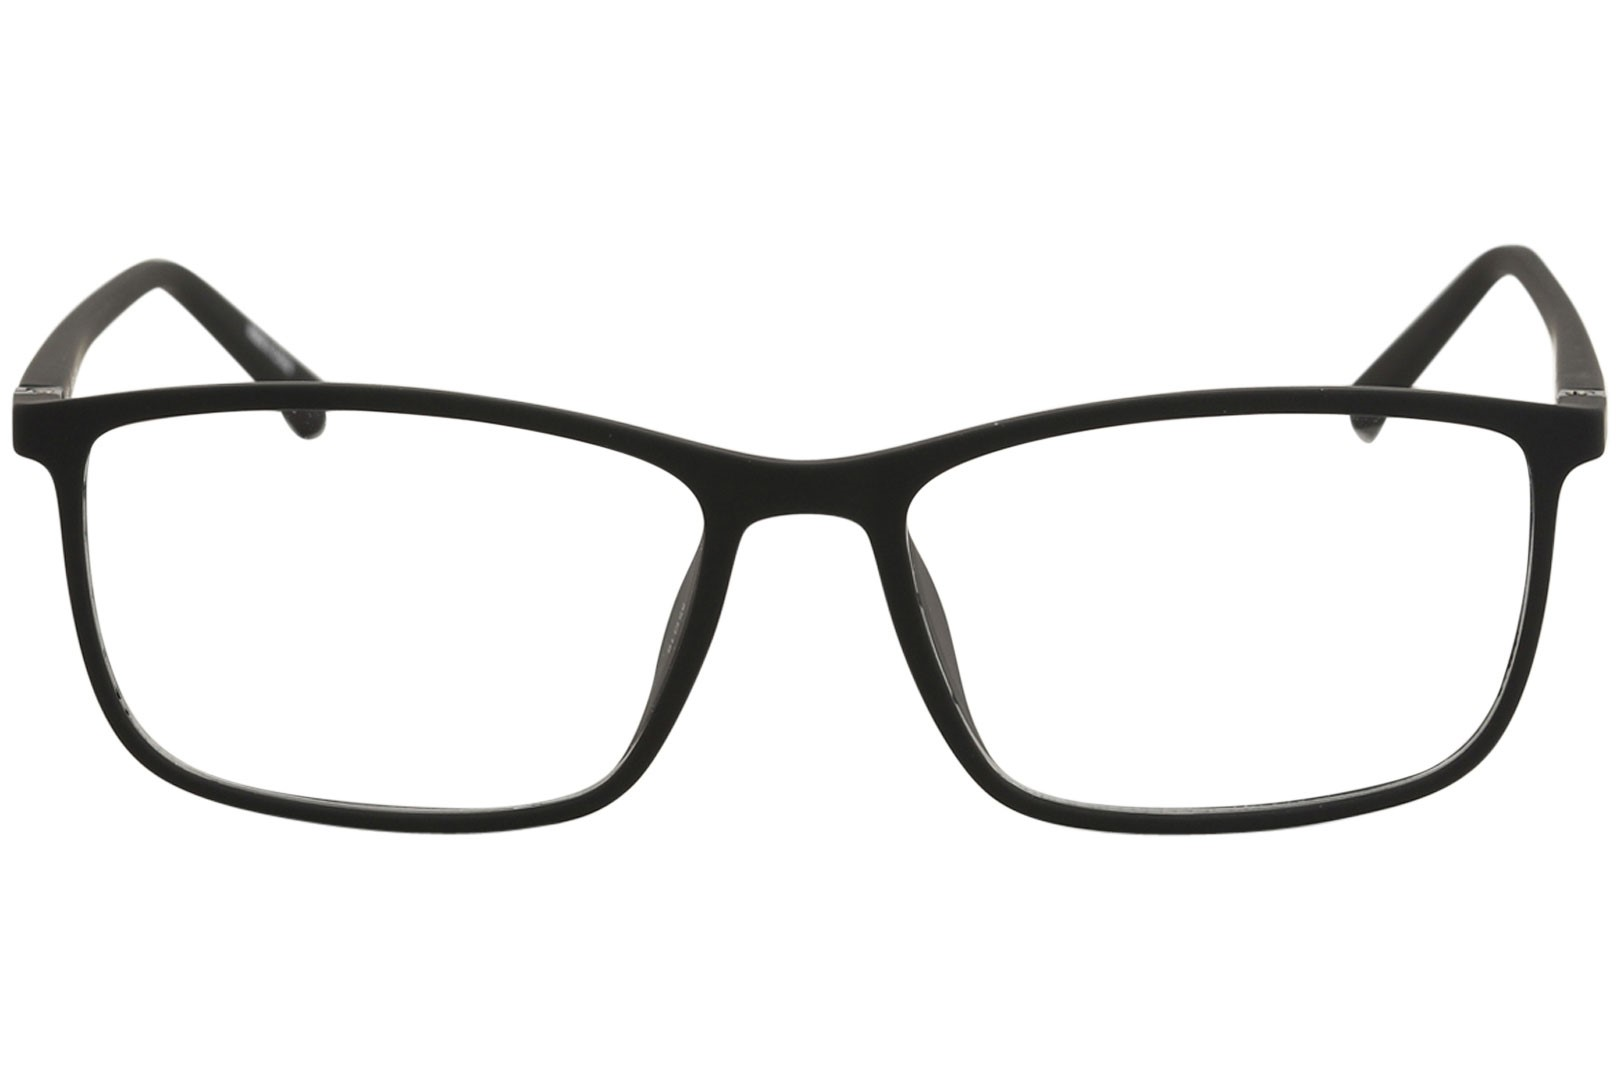 cd5717a52d police eyeglasses perception 6 vpl255 255 06aa black rubber optical frame  55mm - Walmart.com